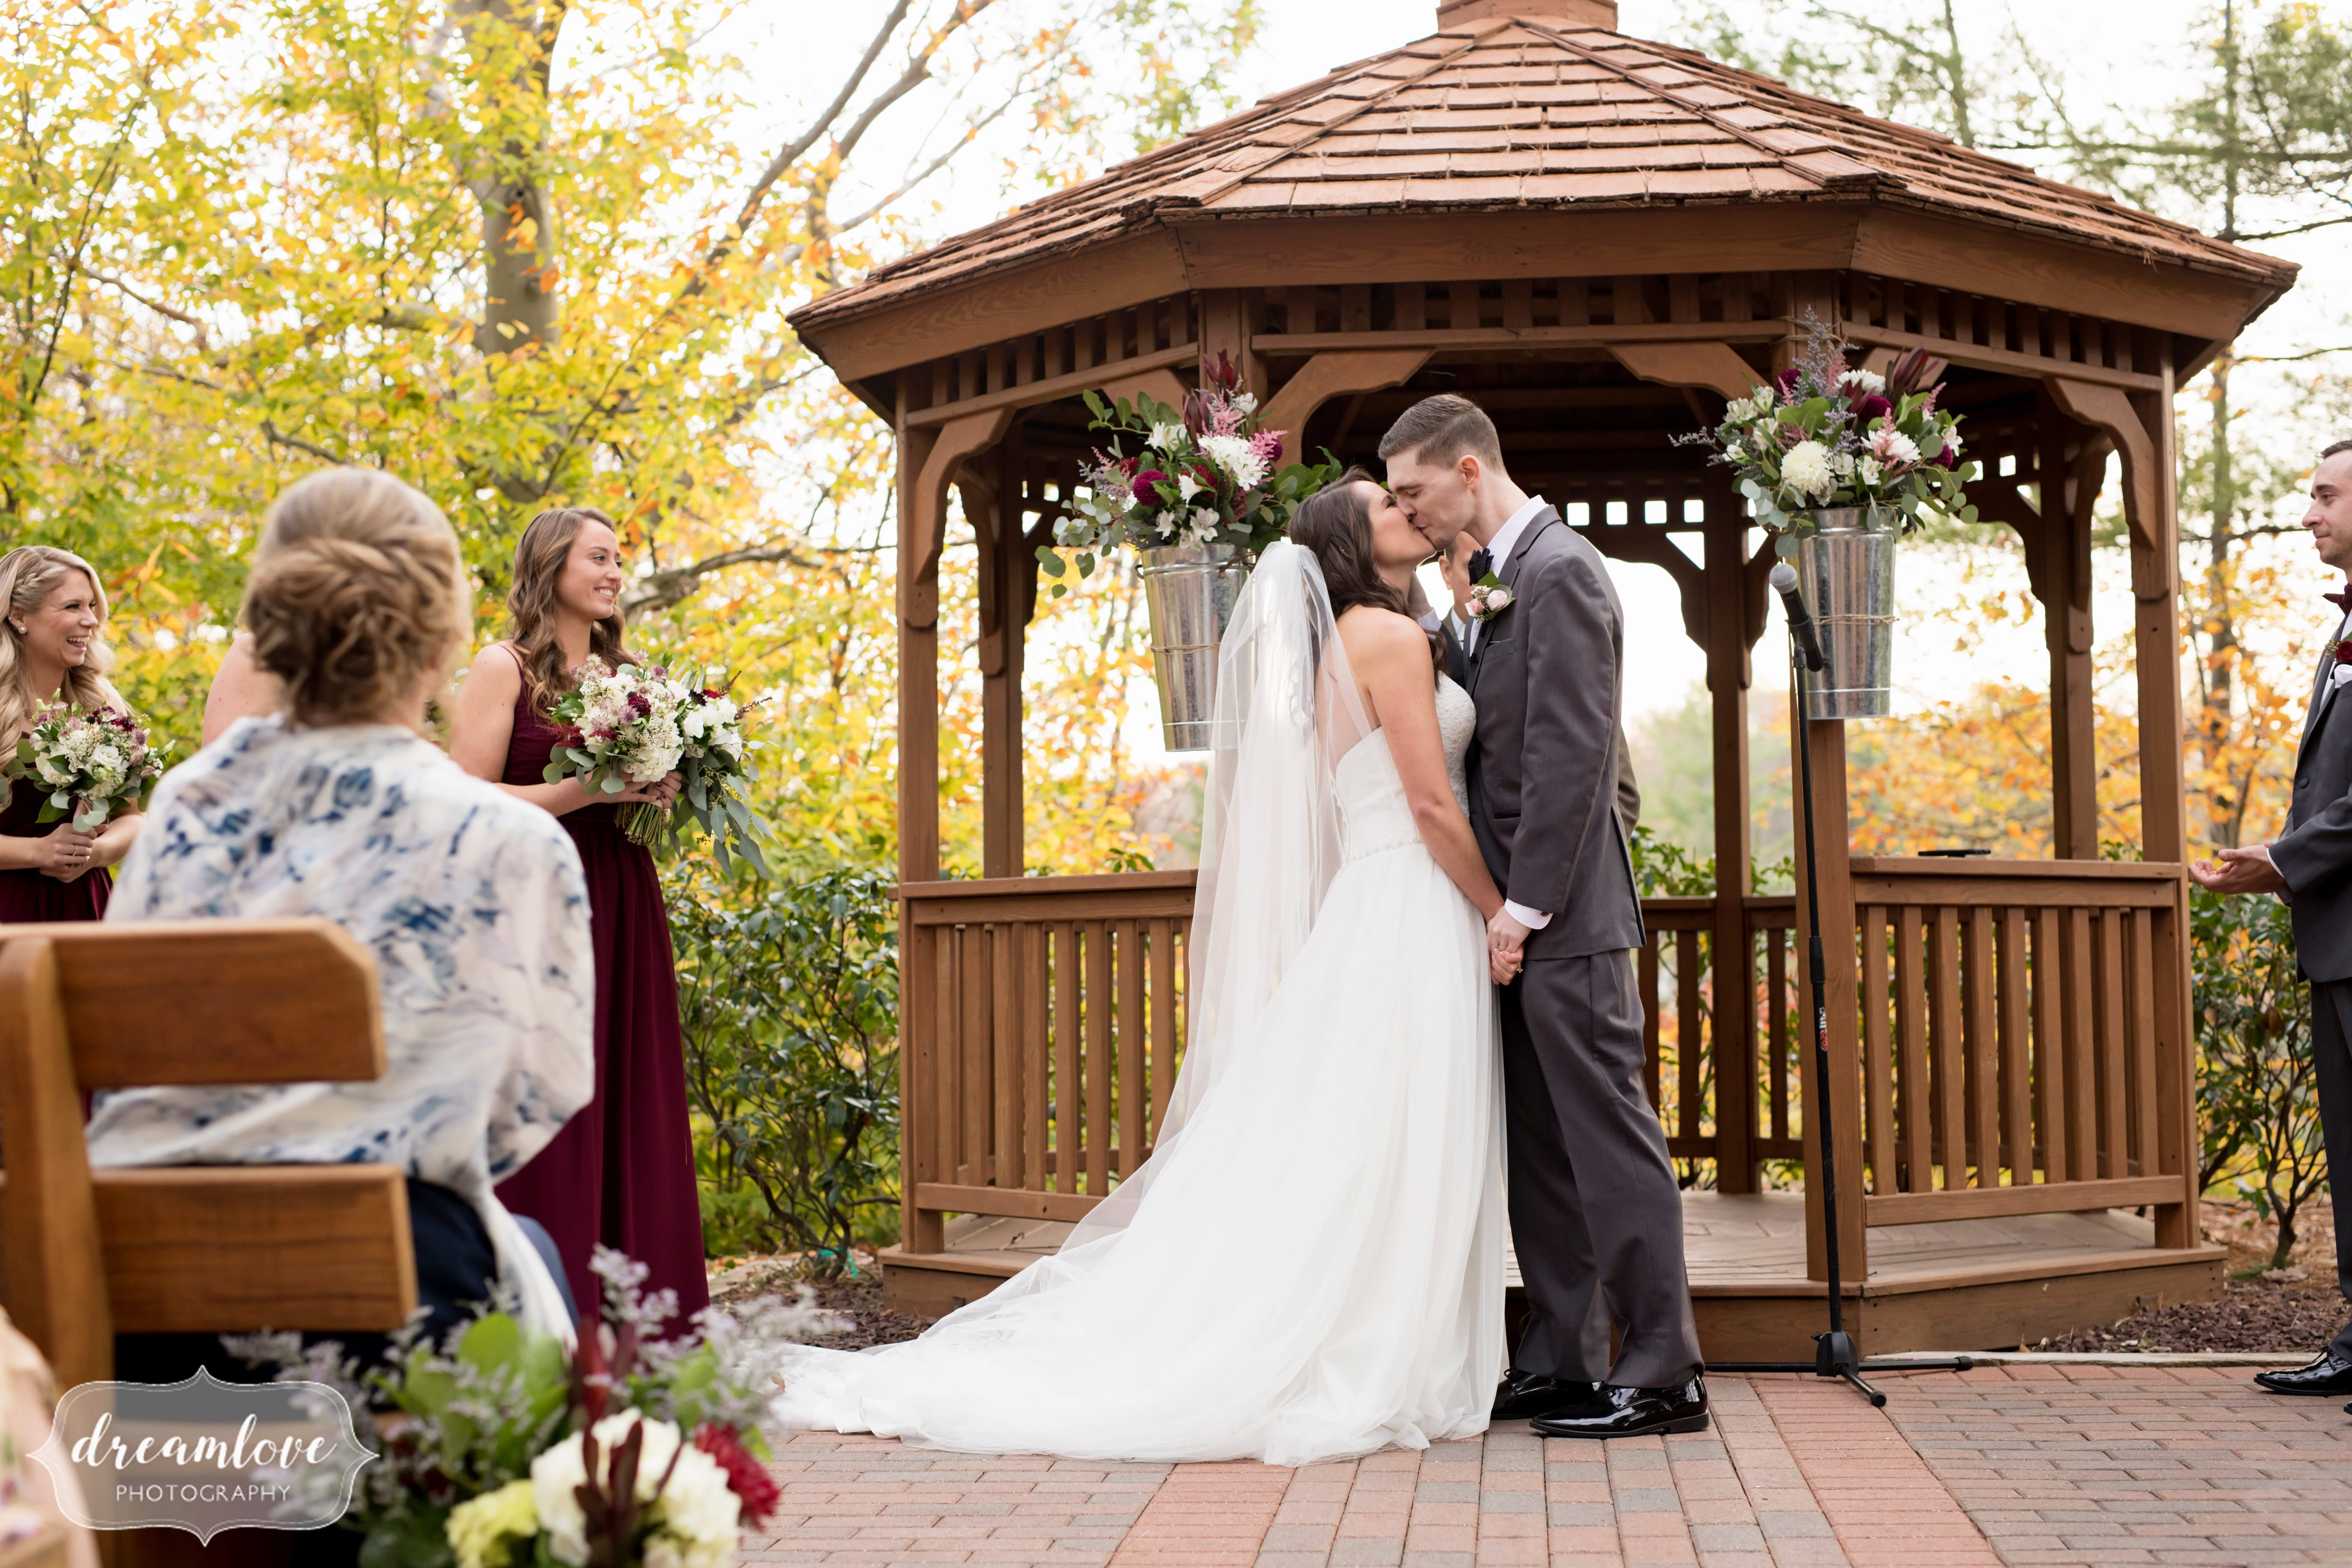 The bride and groom kiss at the end of their outdoor gazebo ceremony by the lake in Middletown, CT.